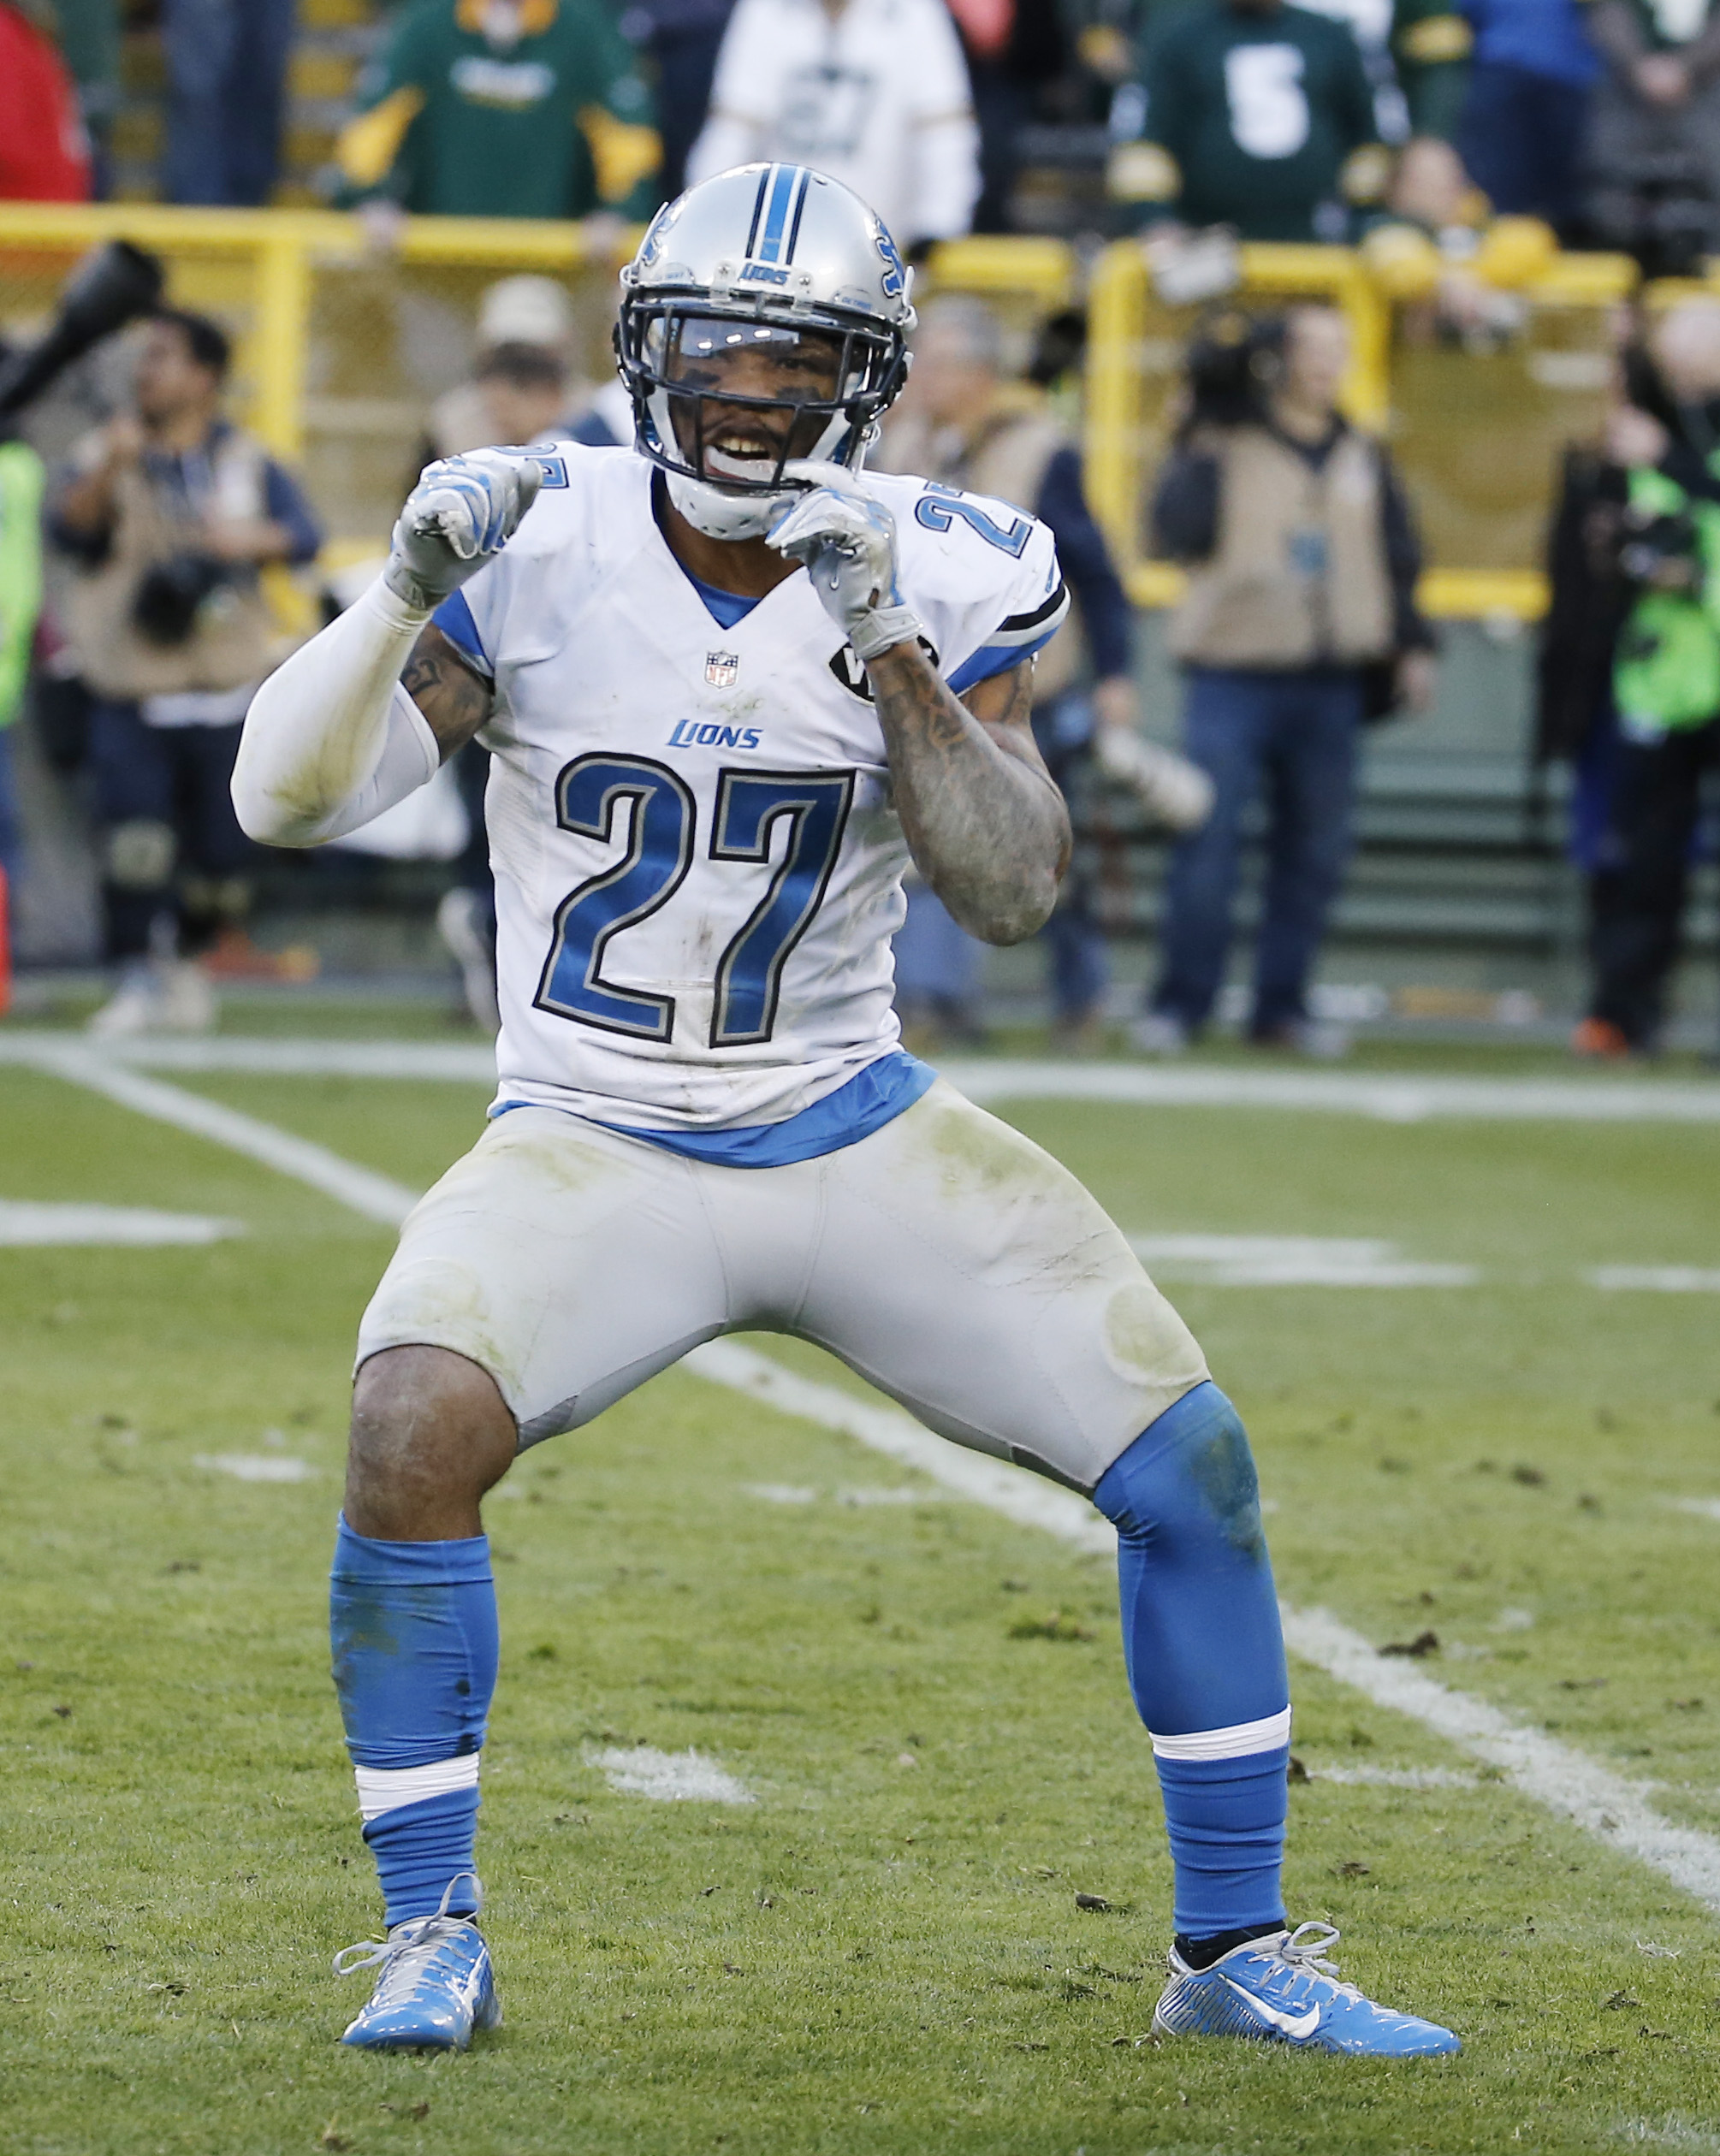 Detroit Lions' Glover Quin reacts after an NFL football game against the Green Bay Packers Sunday, Nov. 15, 2015, in Green Bay, Wis. The Lions won 18-16. (AP Photo/Morry Gash)